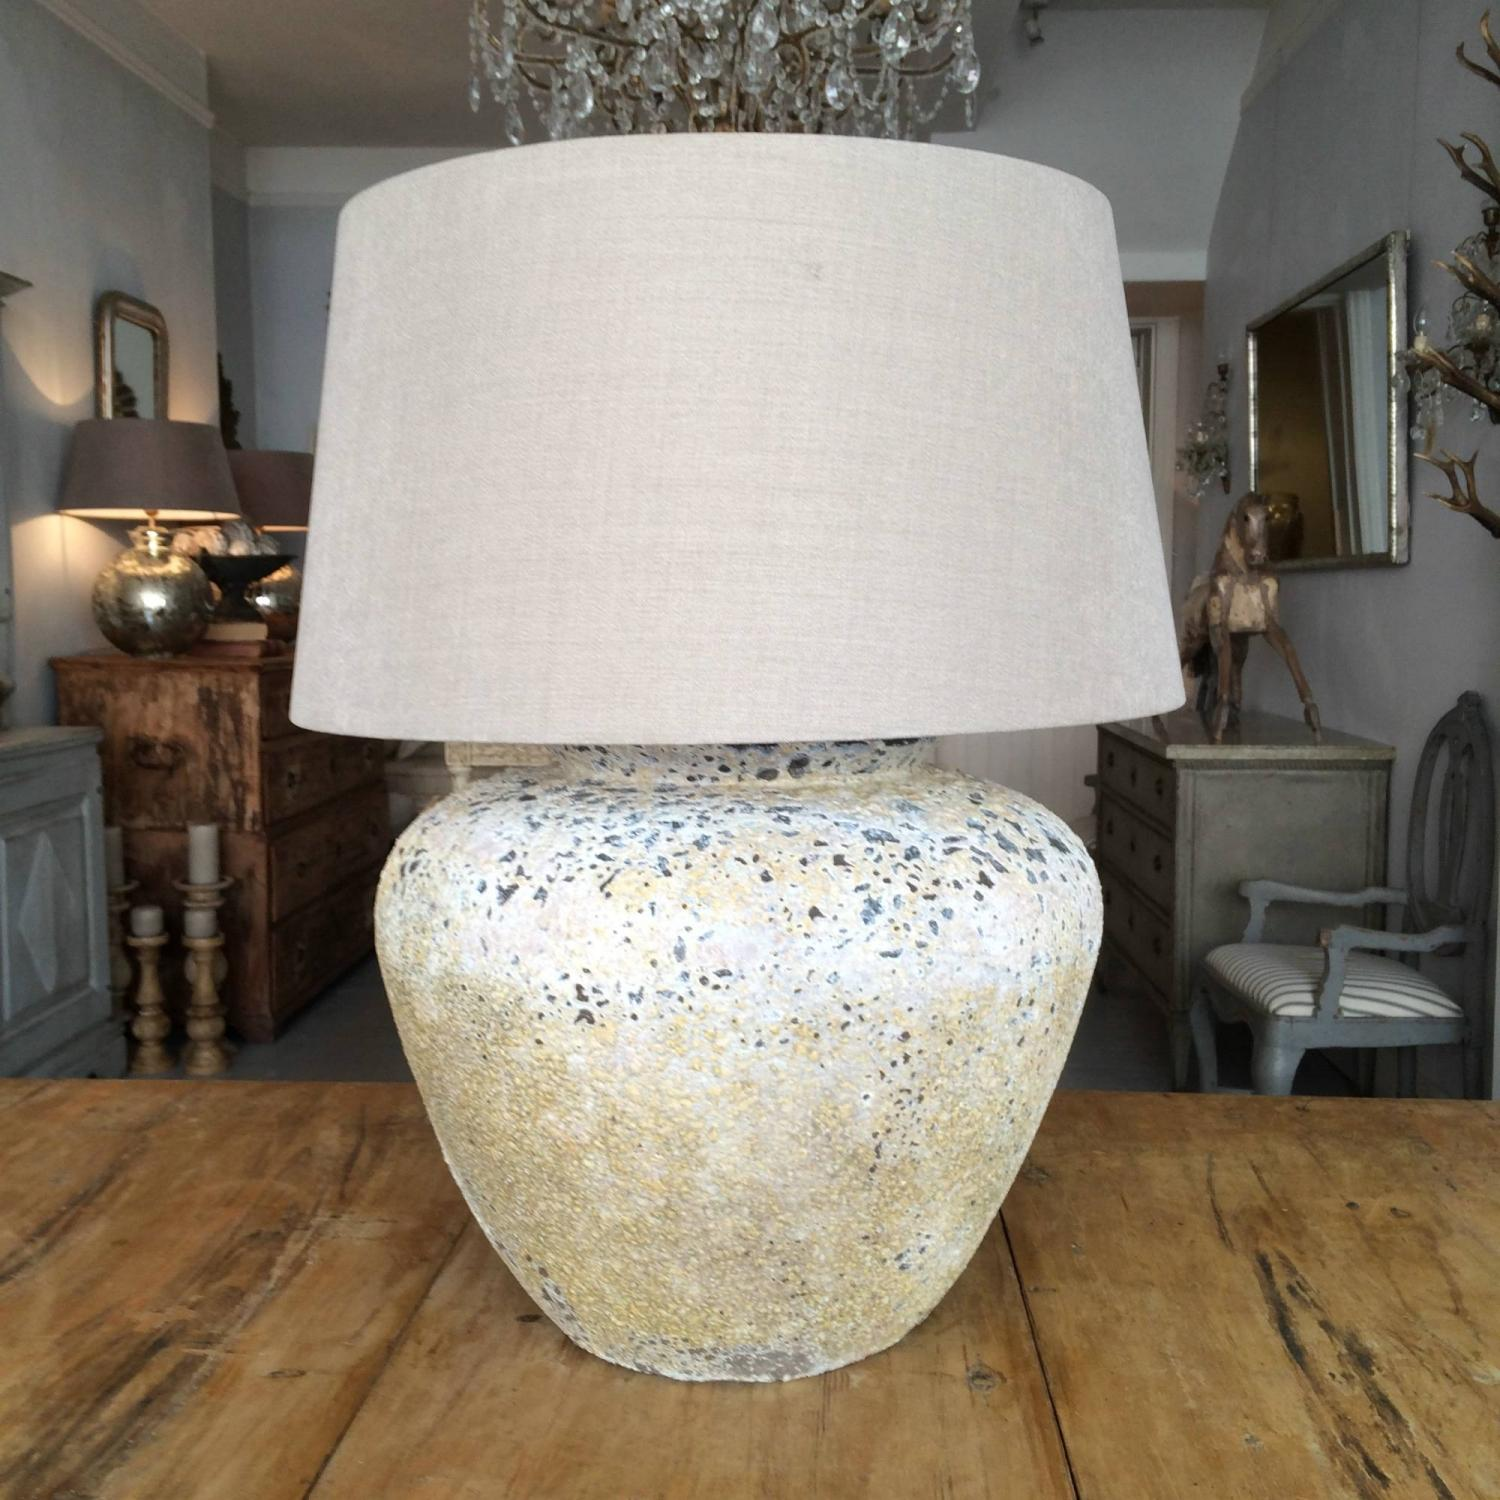 IMPRESSIVELY LARGE BARNACLED TERRACOTTA TABLE LAMP In LIGHTING